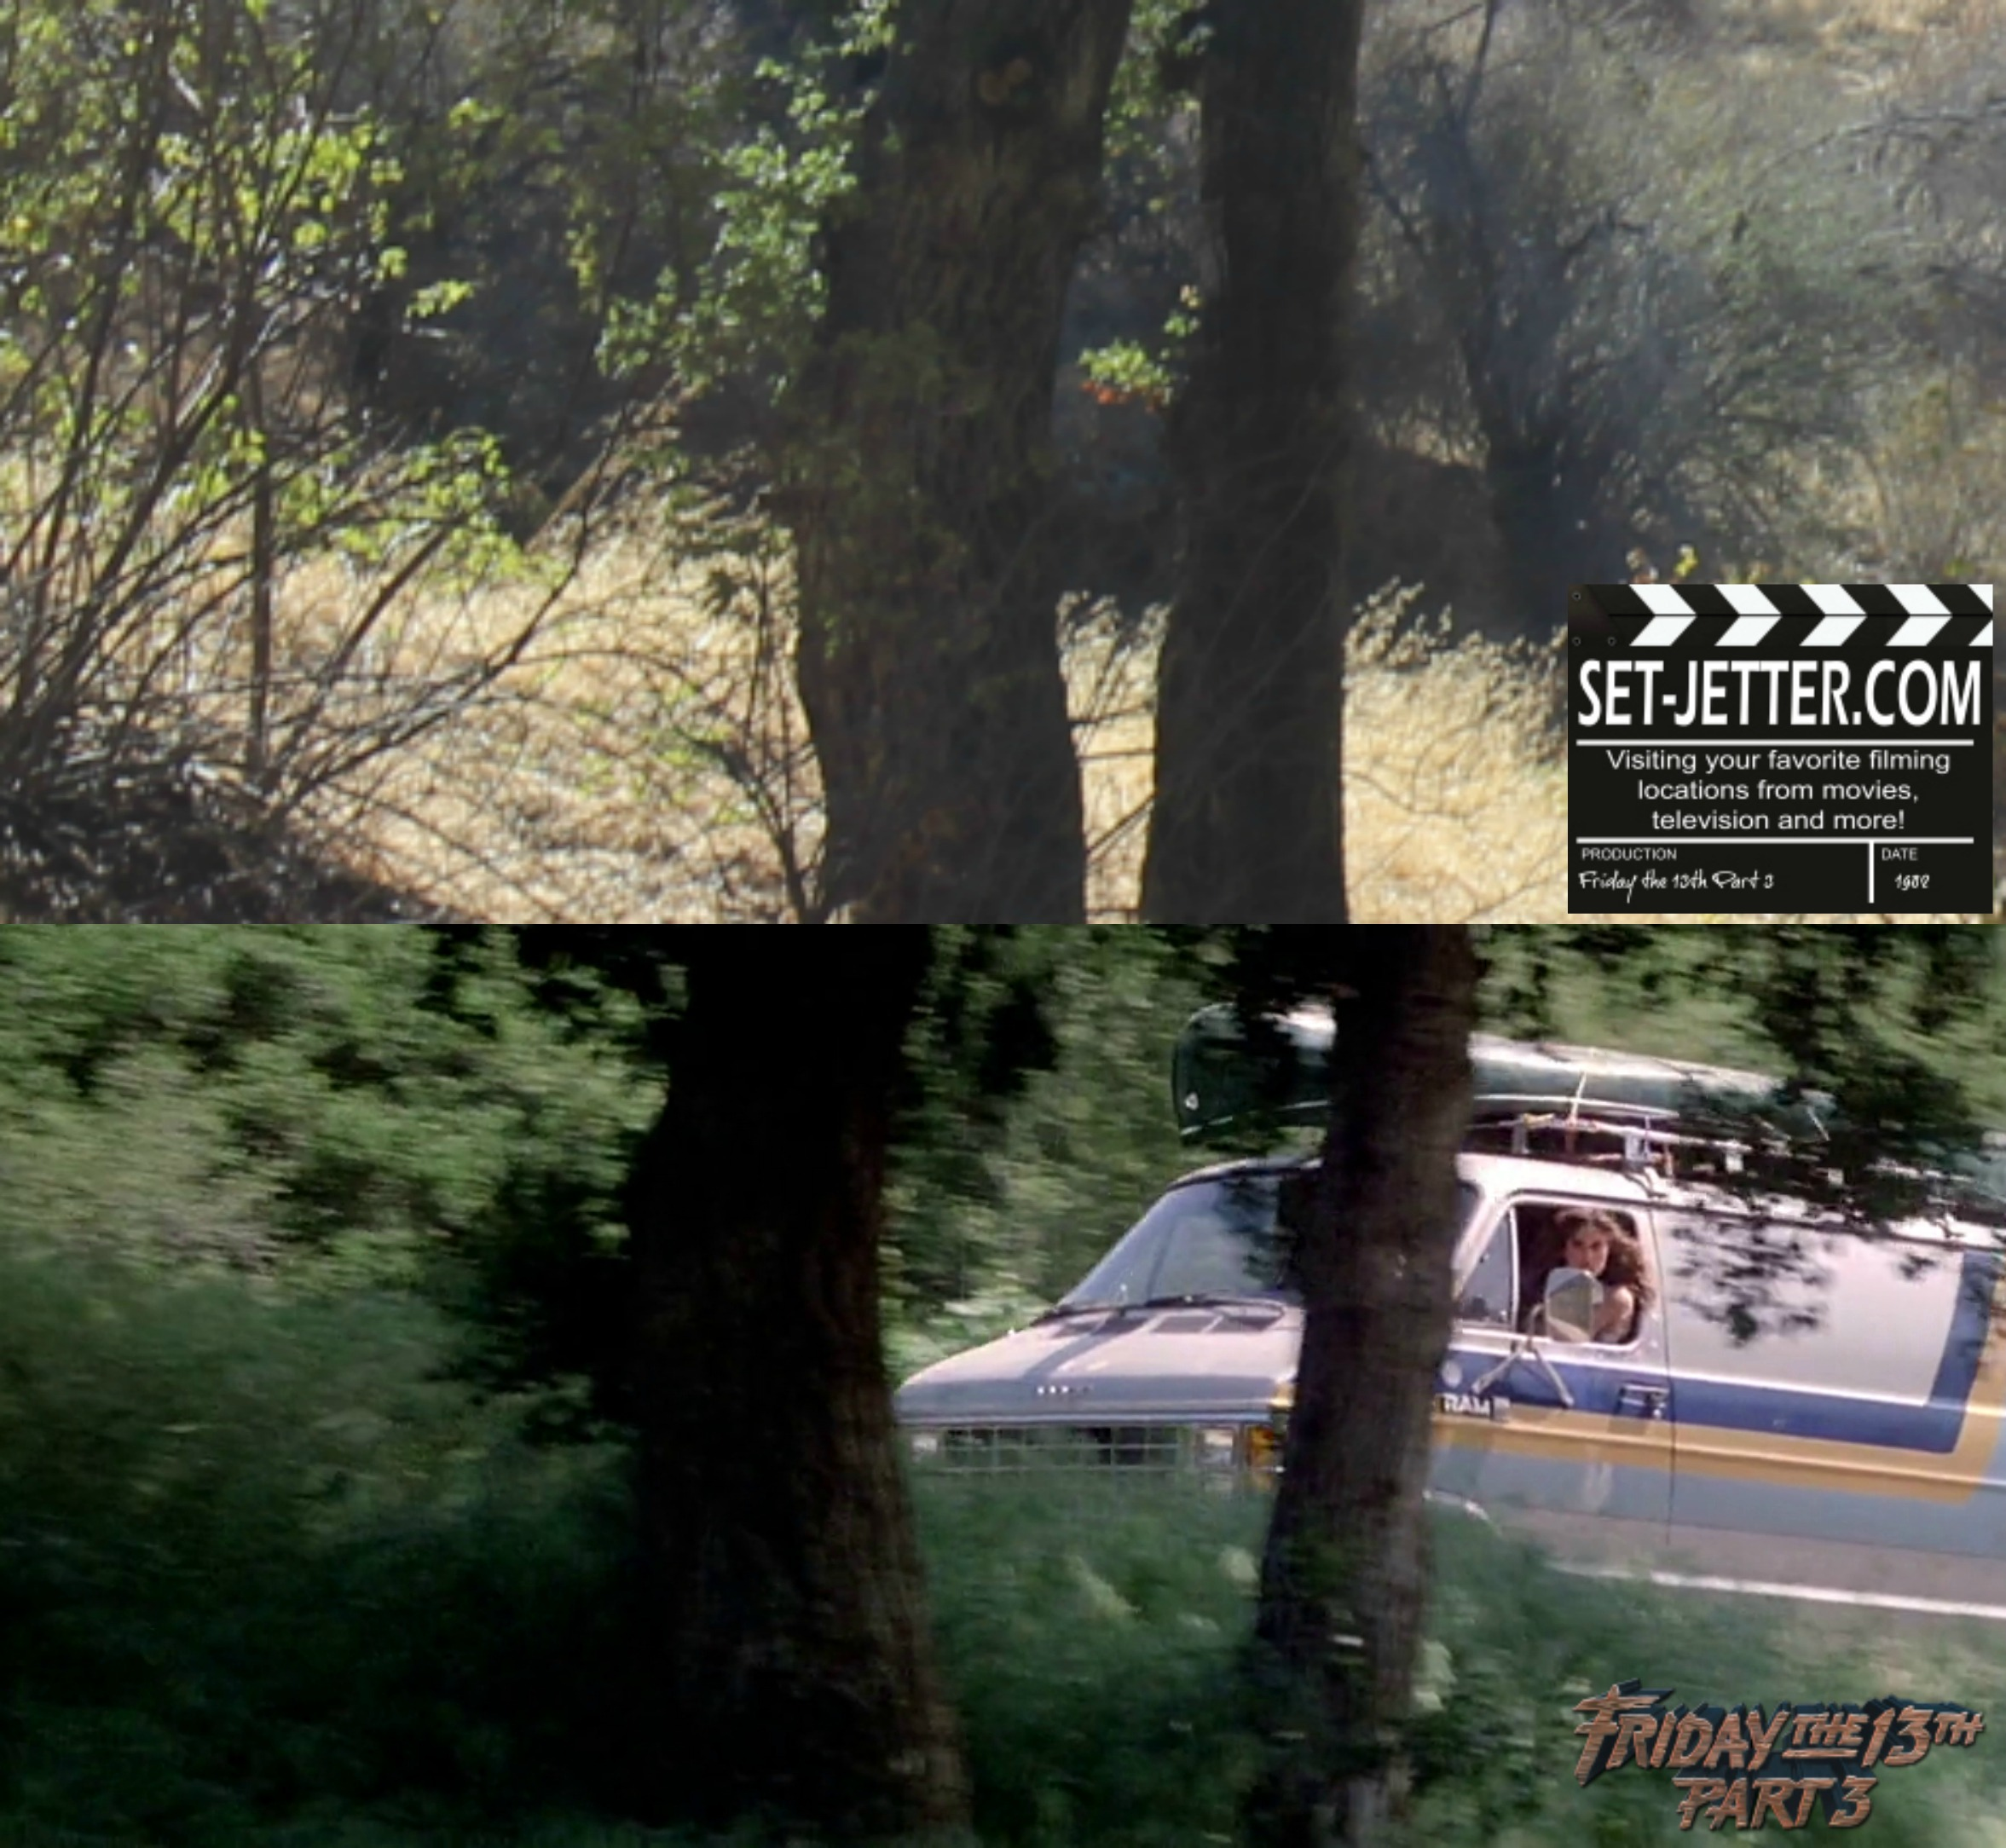 Friday the 13th Part 3 comparison 220.jpg